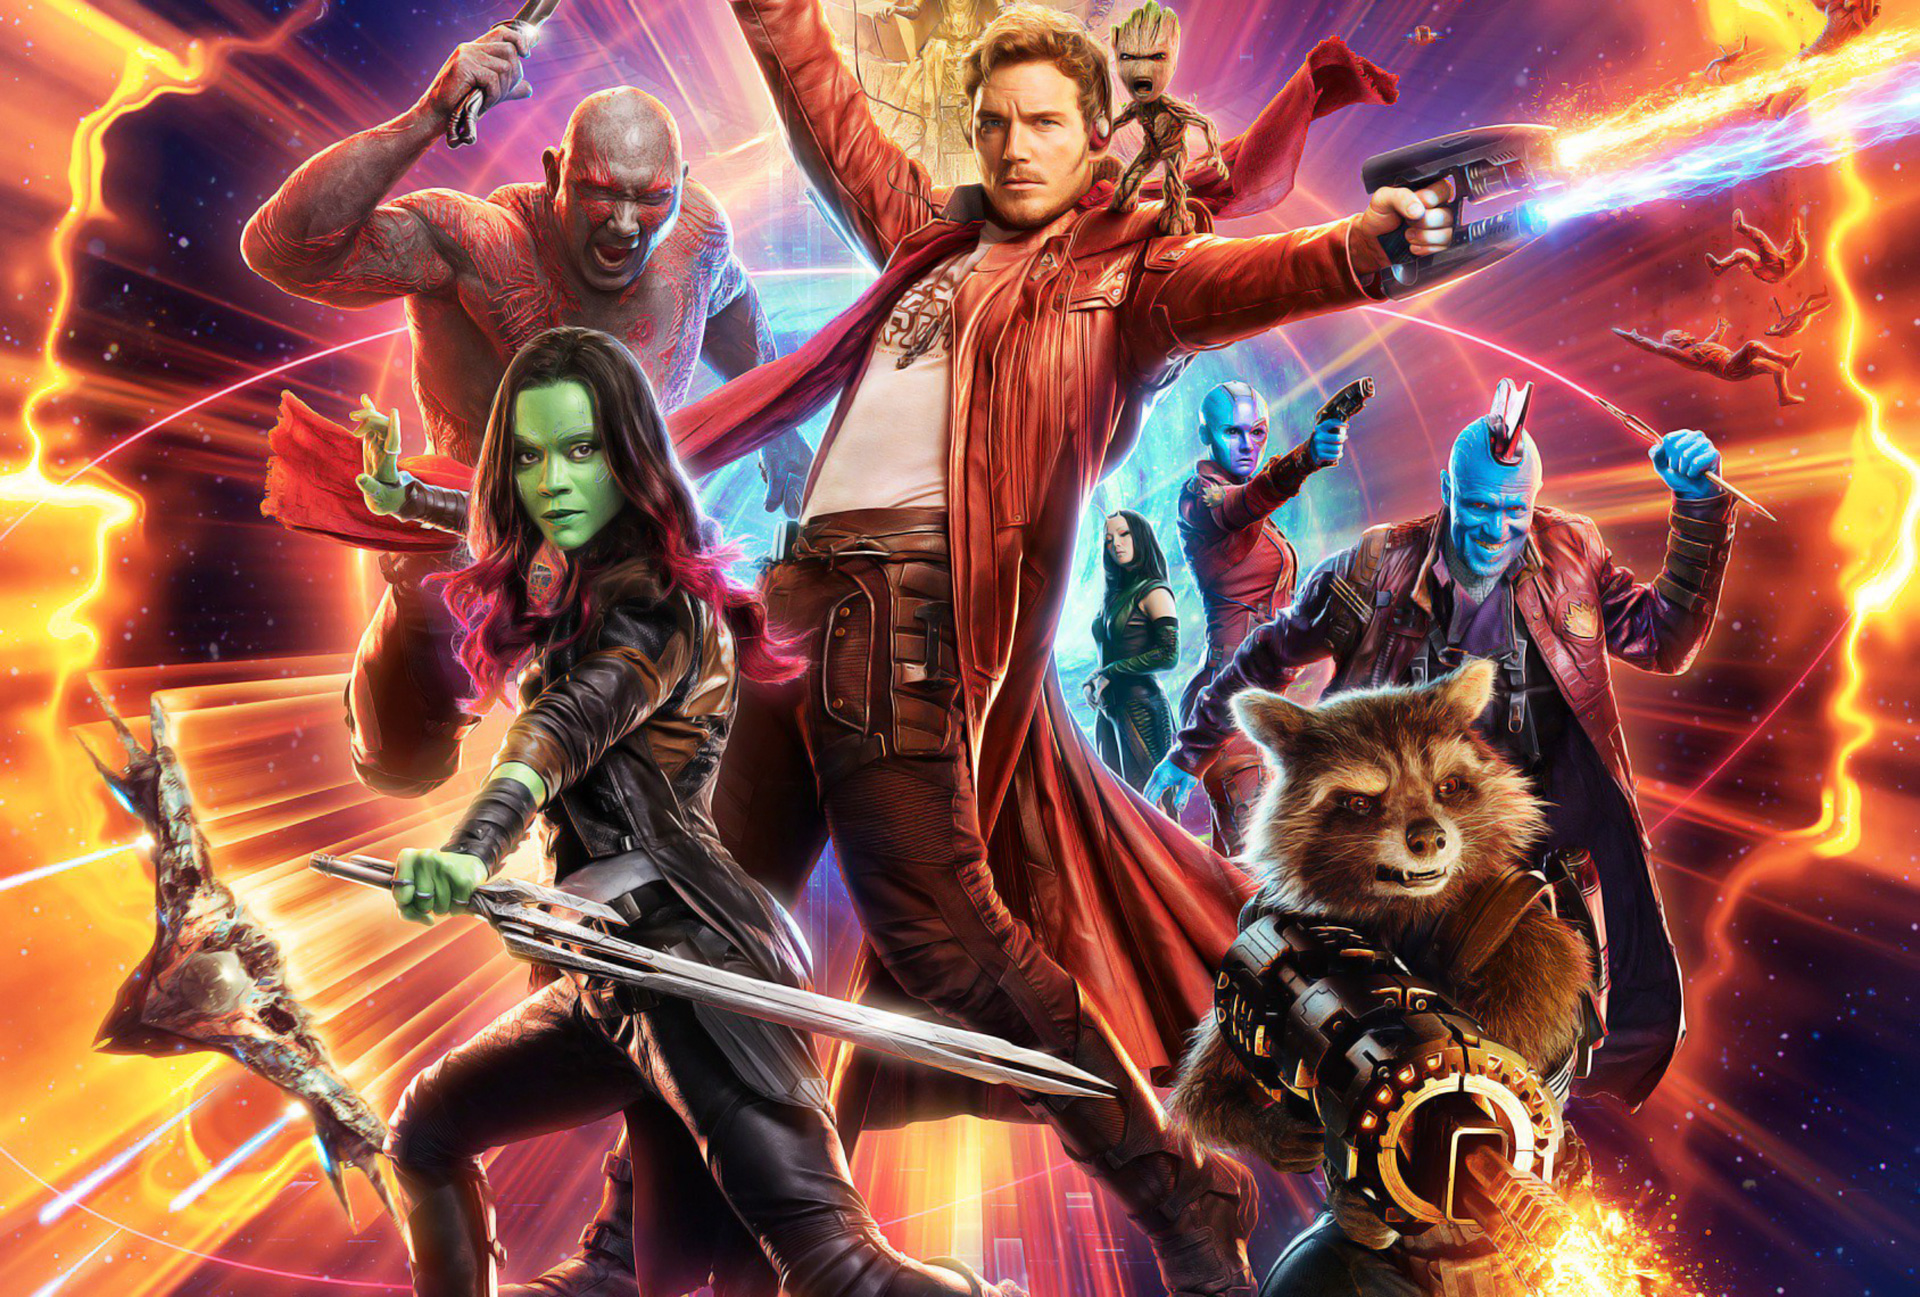 Great Wallpaper Movie Guardians The Galaxy - guardians-of-the-galaxy-2-po  Trends_296155.jpg